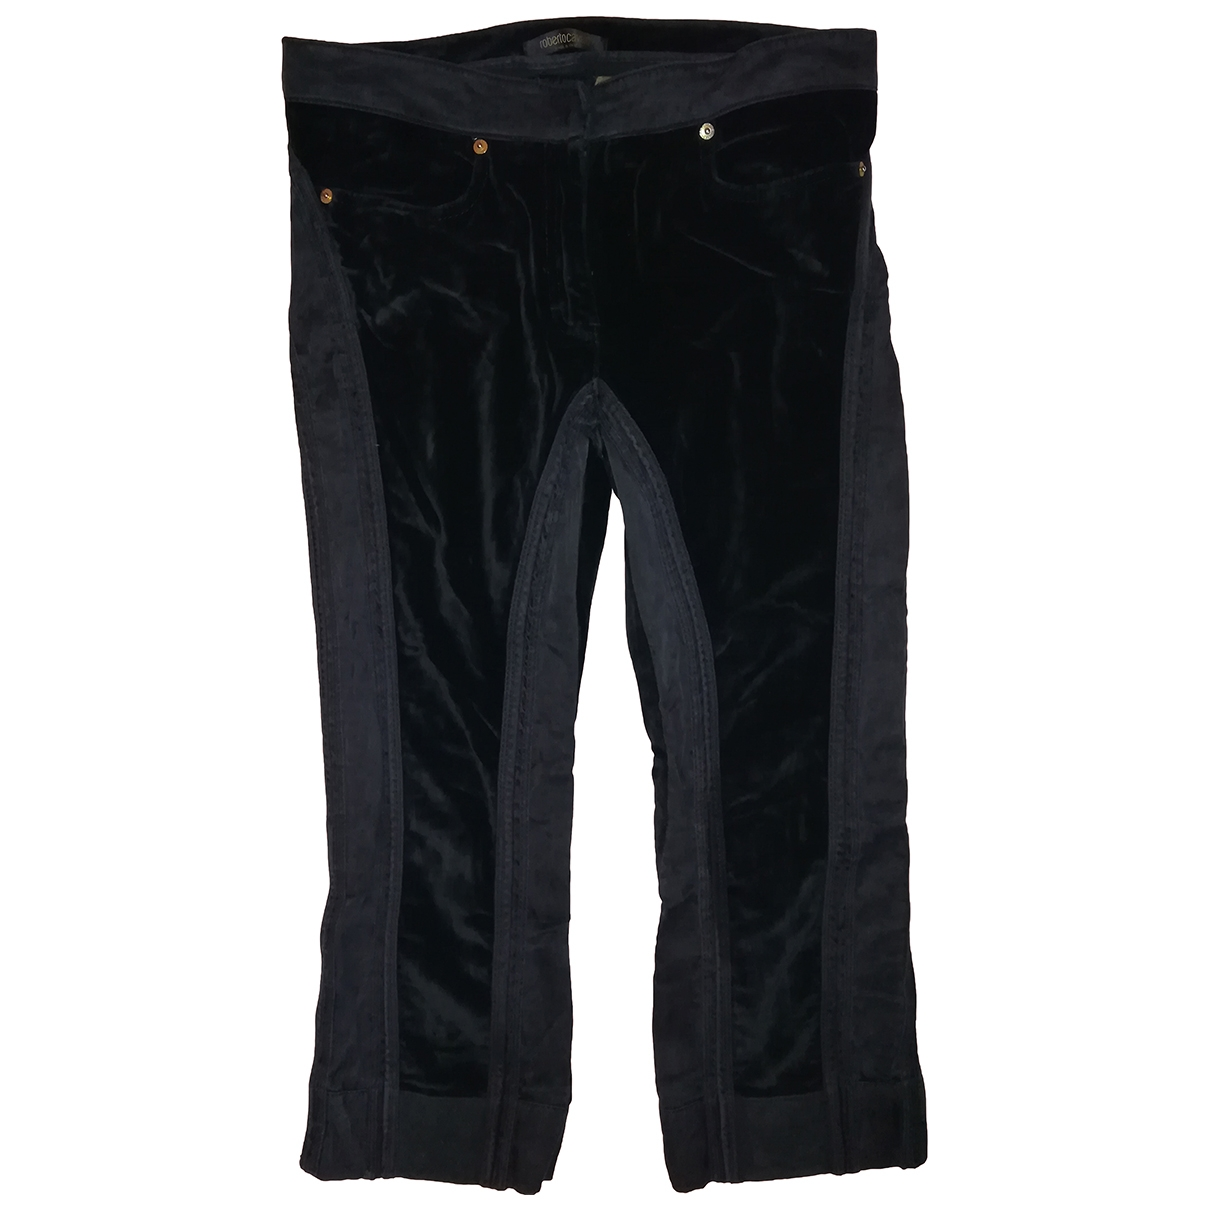 Roberto Cavalli \N Black Cotton Trousers for Women M International